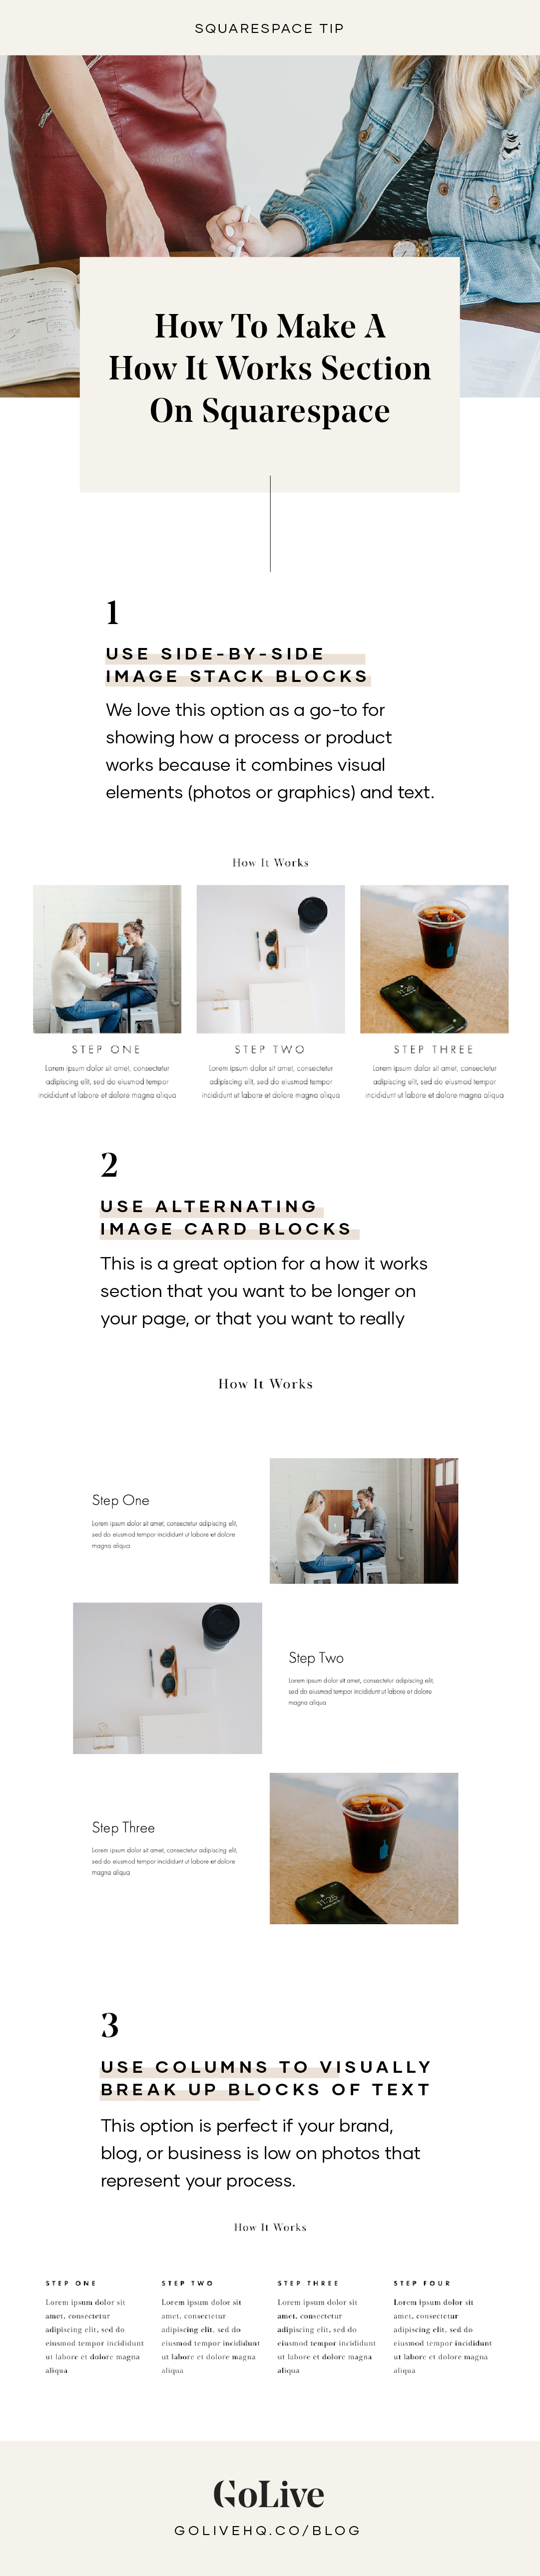 how to create a how it works section in Squarespace | By GoLive